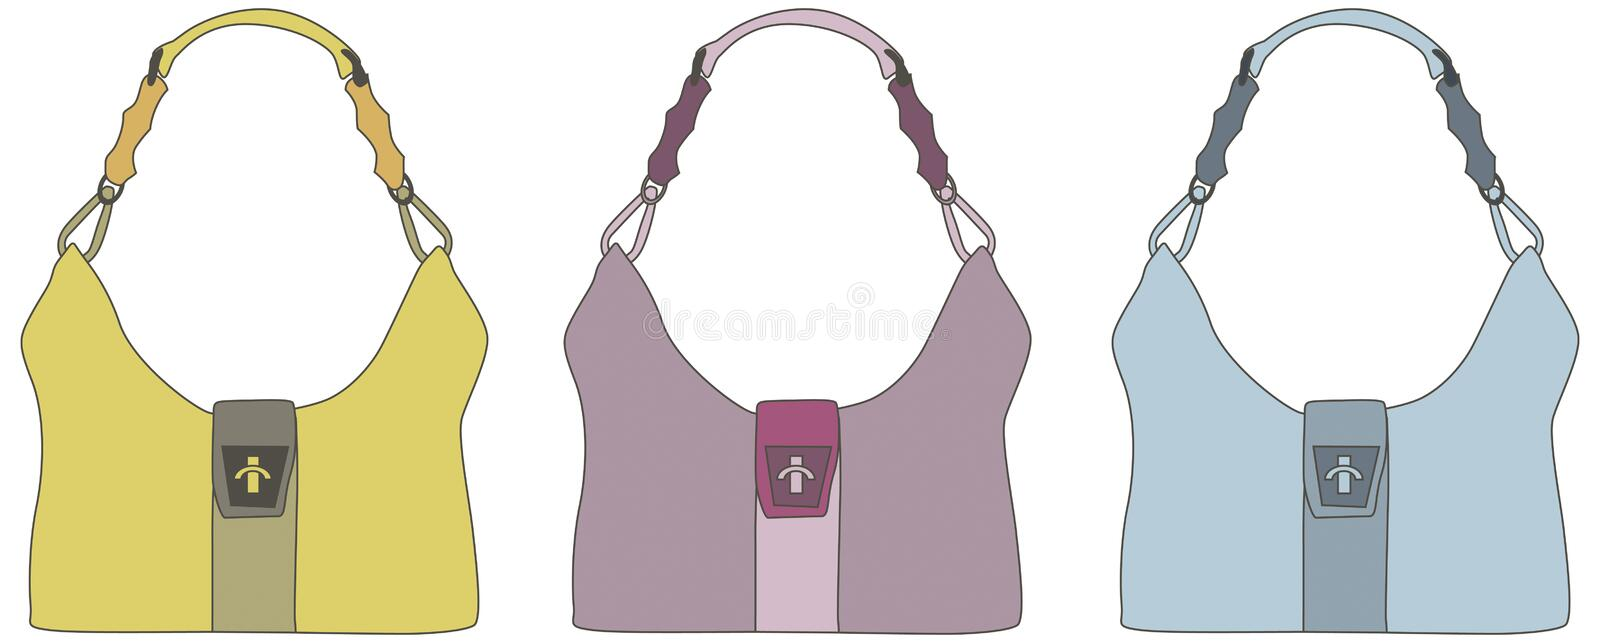 Download Leather handbags stock vector. Illustration of silhouette - 4390166